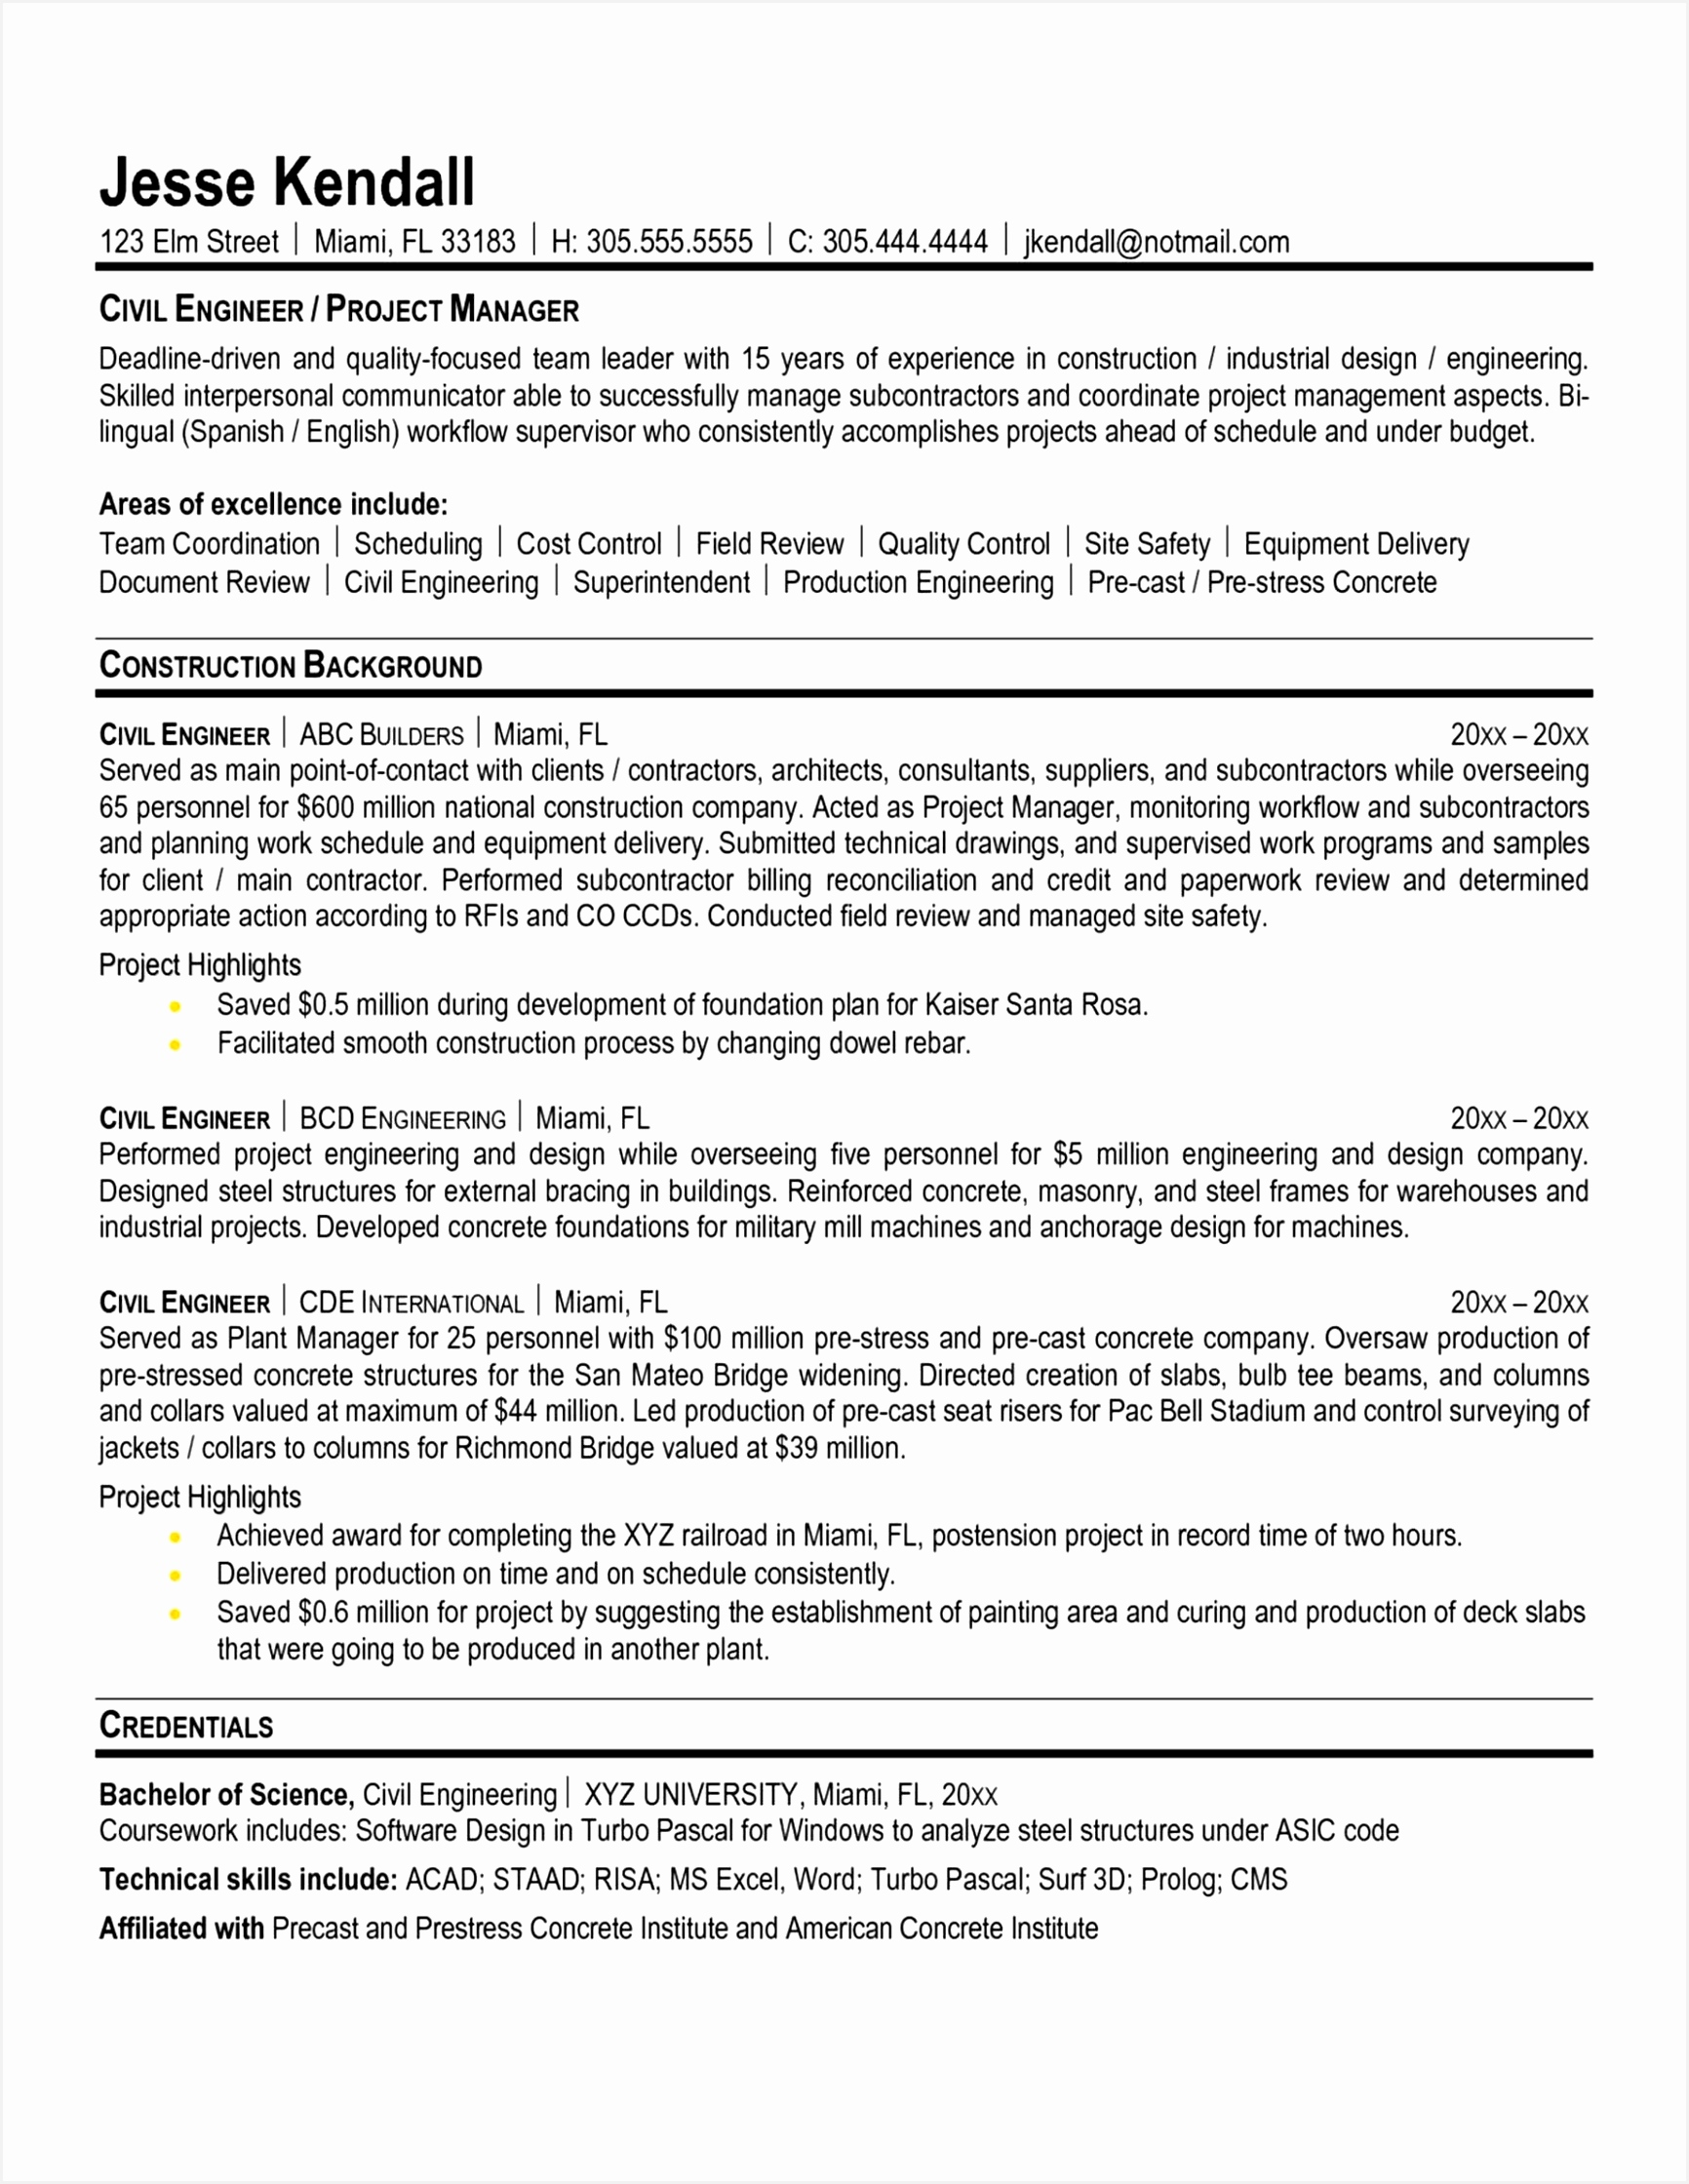 Contract Stress Engineer Sample Resume Nysfz Unique Quality assurance Director Resume — Resumes Project Of Contract Stress Engineer Sample Resume H7ght Luxury Awesome Resume for Tele Engineer Fresher Resume Ideas